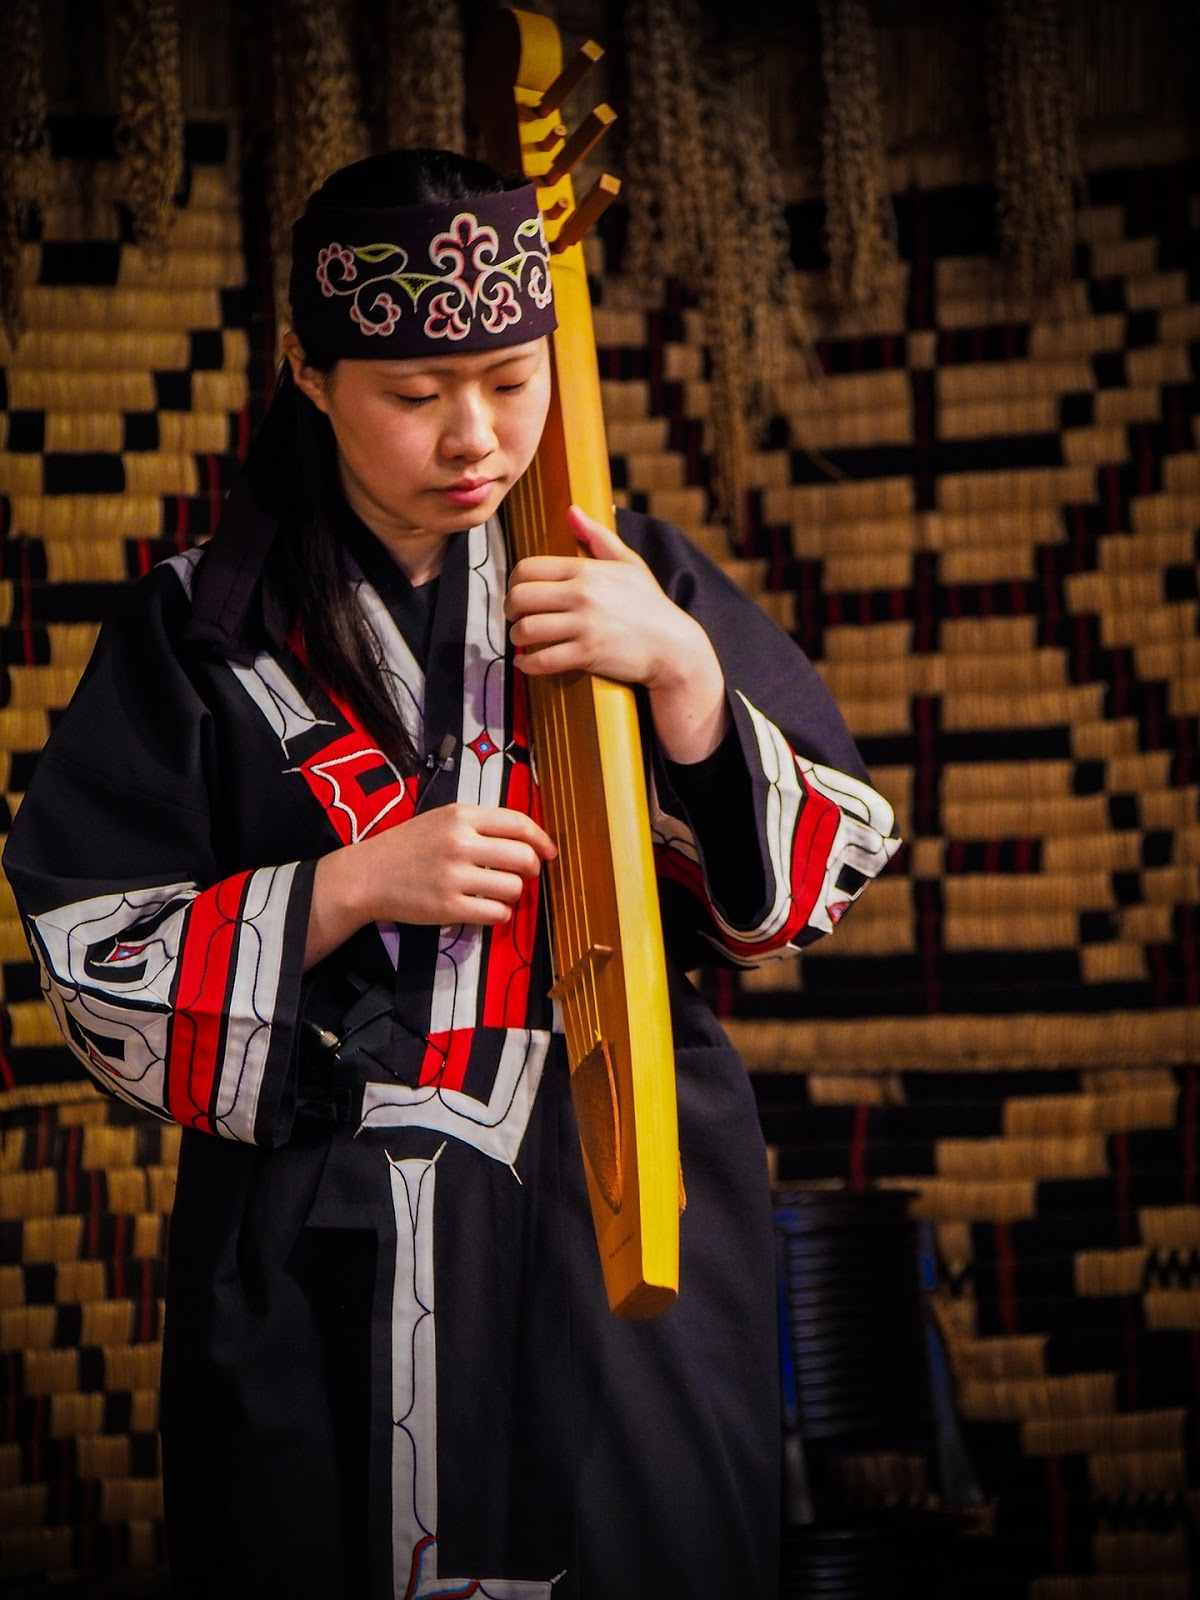 The Tonkori—a traditional musical instrument played by the Ainu people.